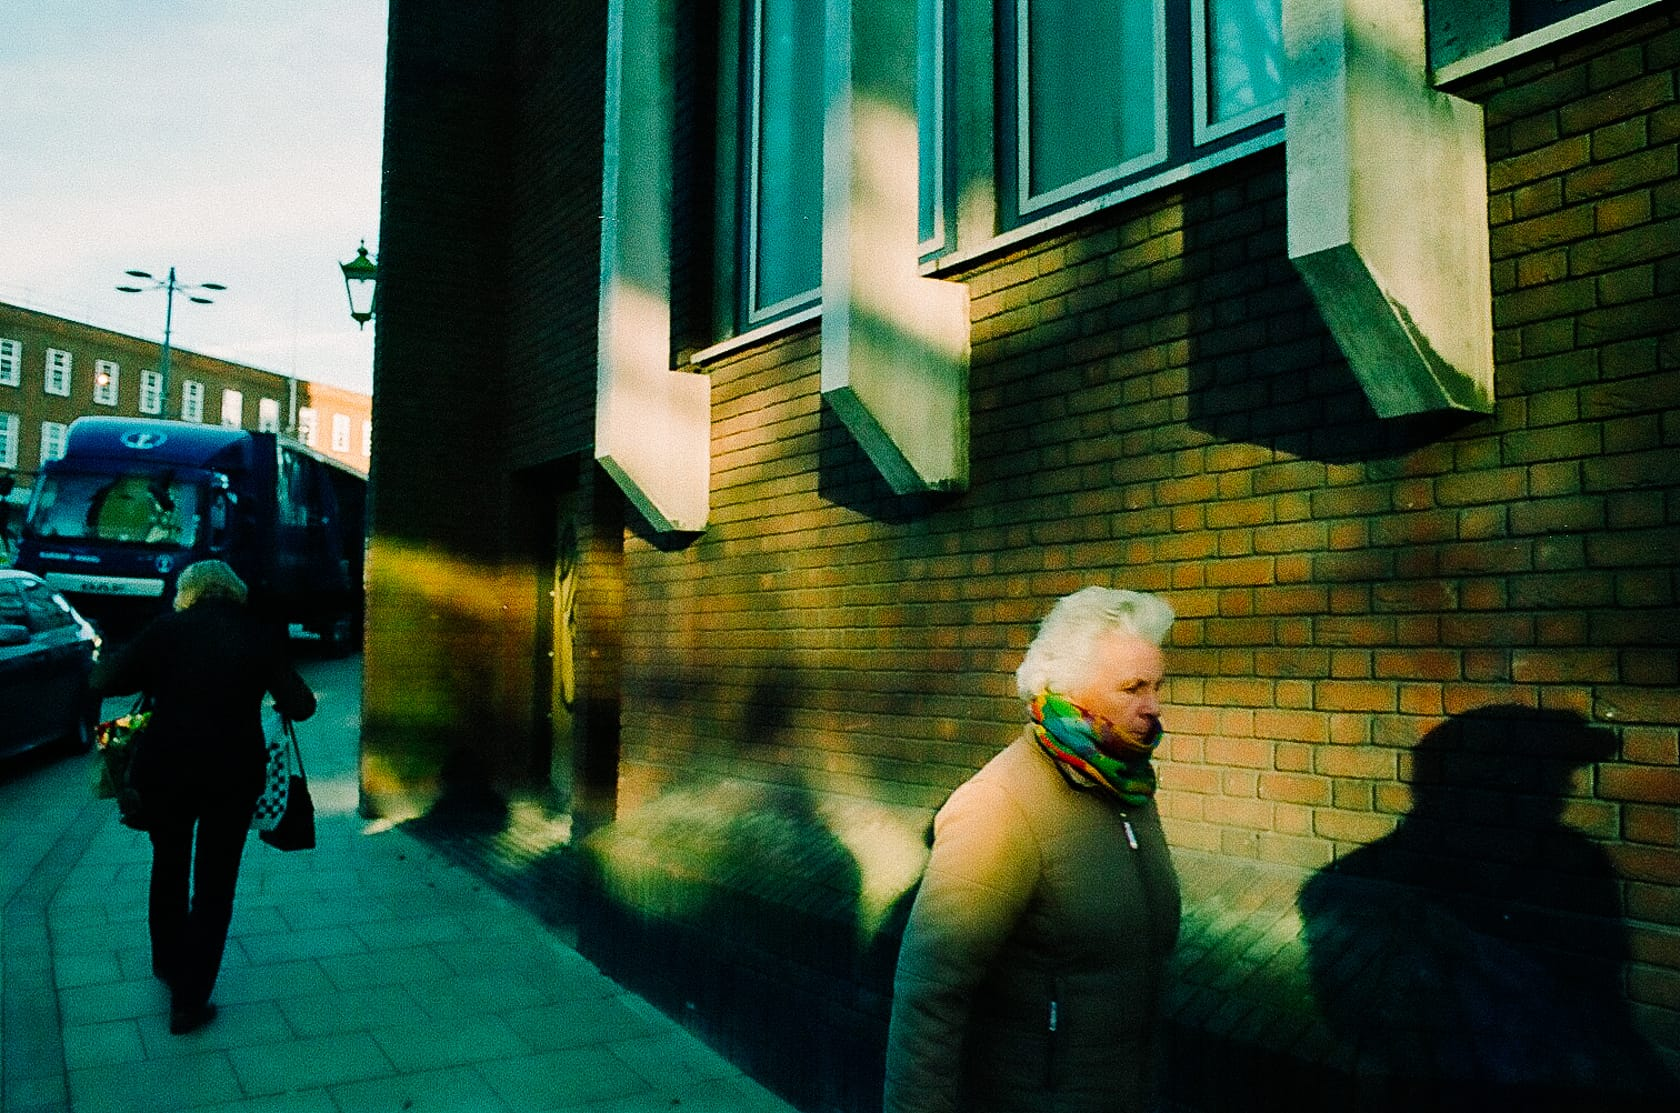 What I learned from Film Street Photography 1